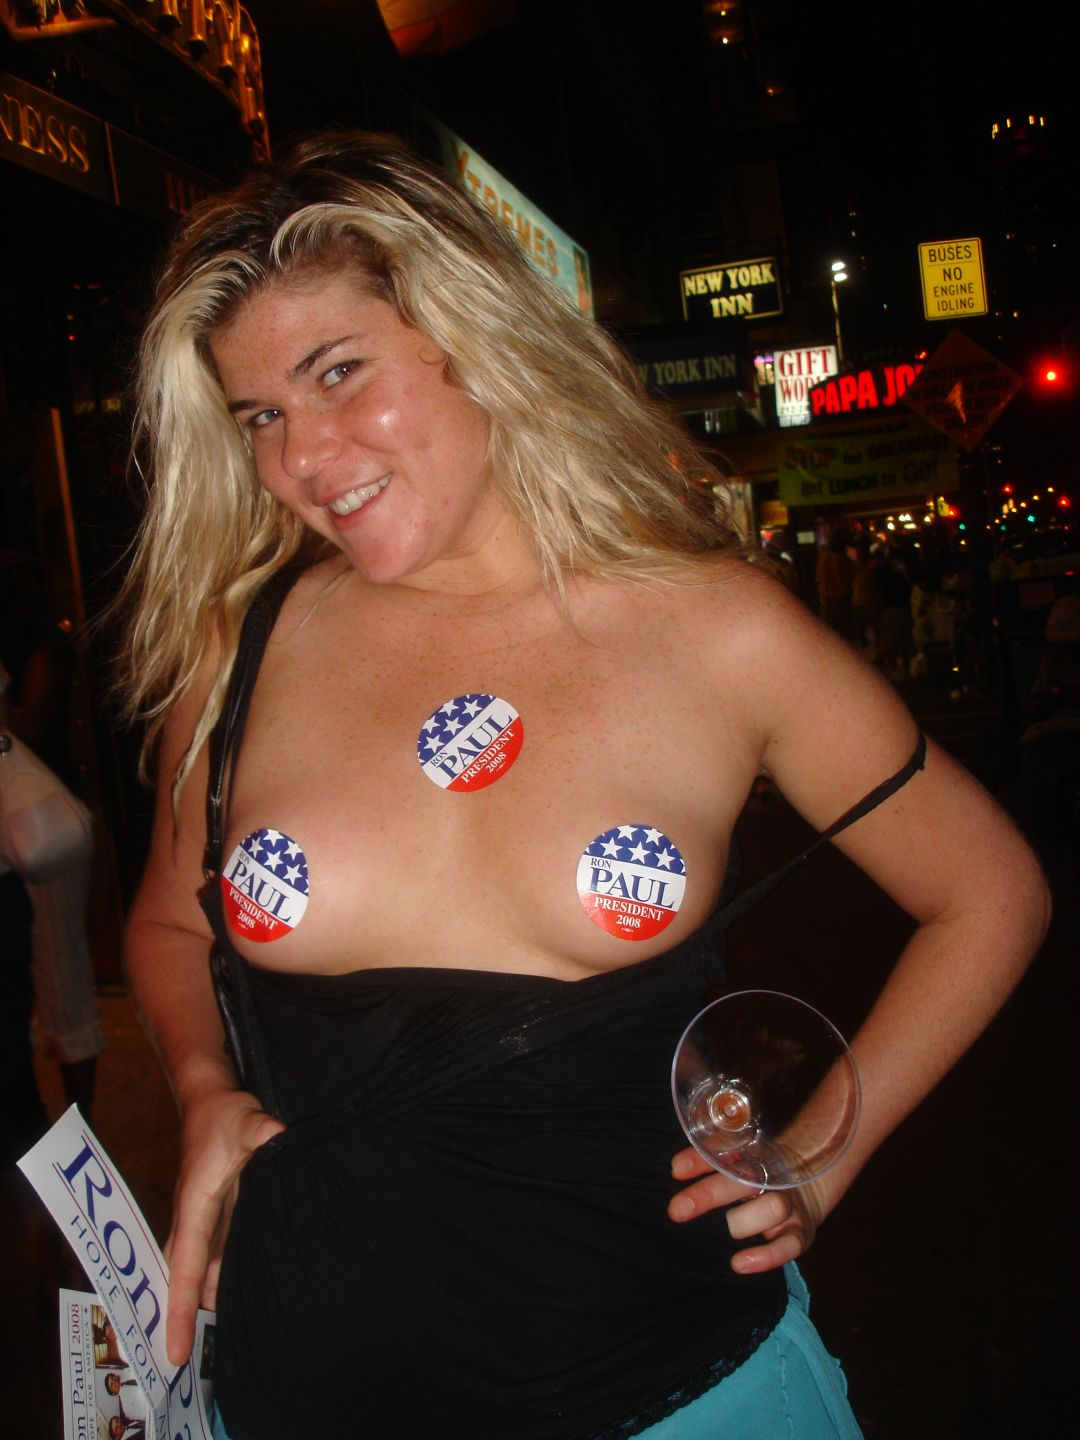 NSFW – Ron Paul Supporter